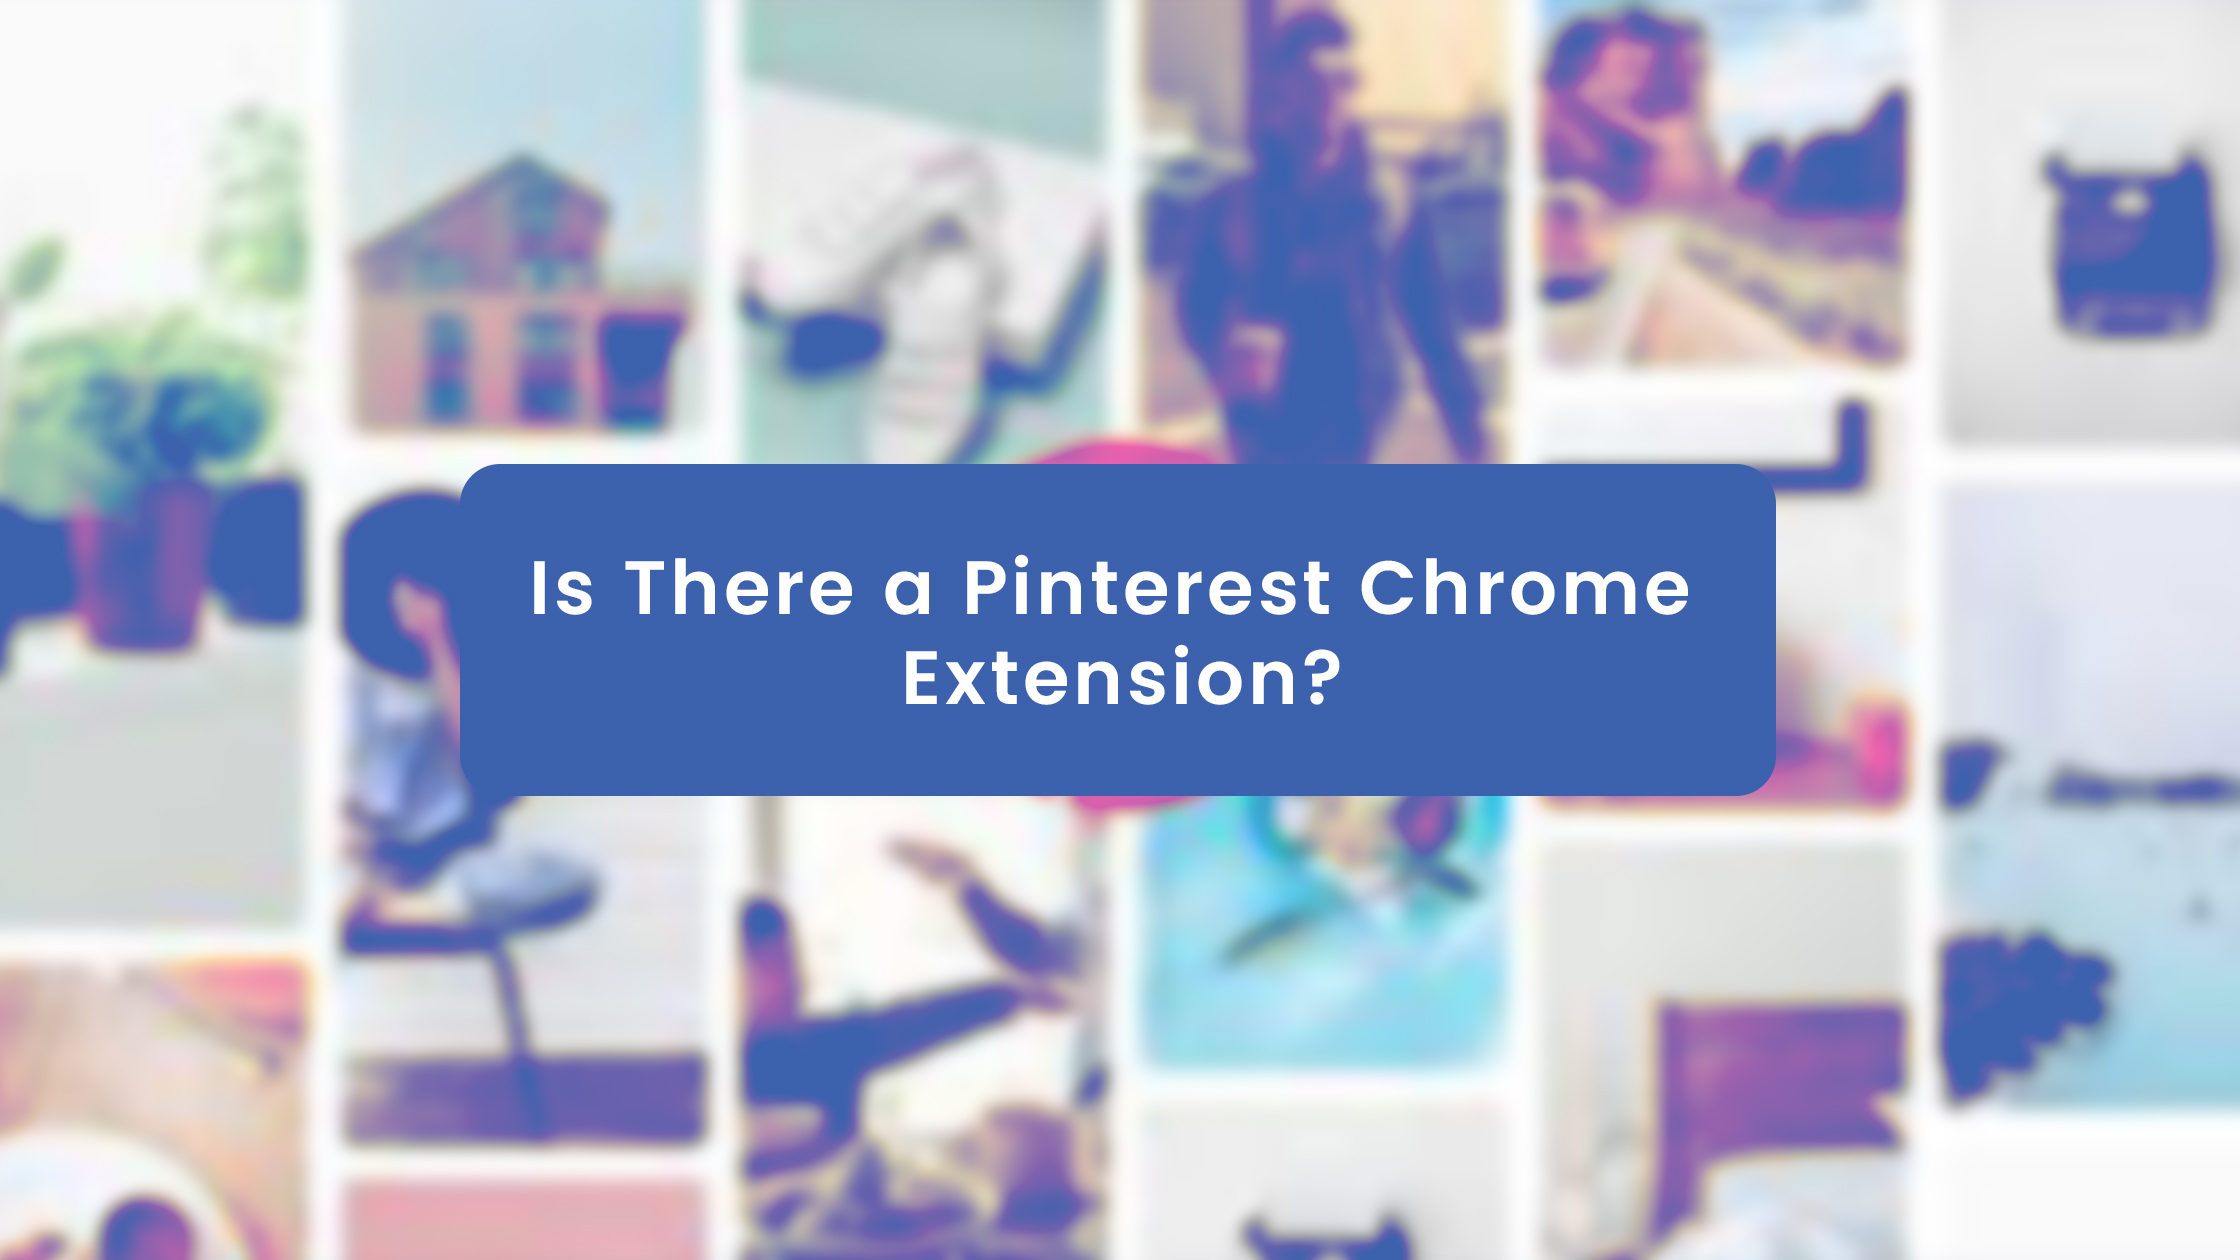 Is There a Pinterest Chrome Extension?